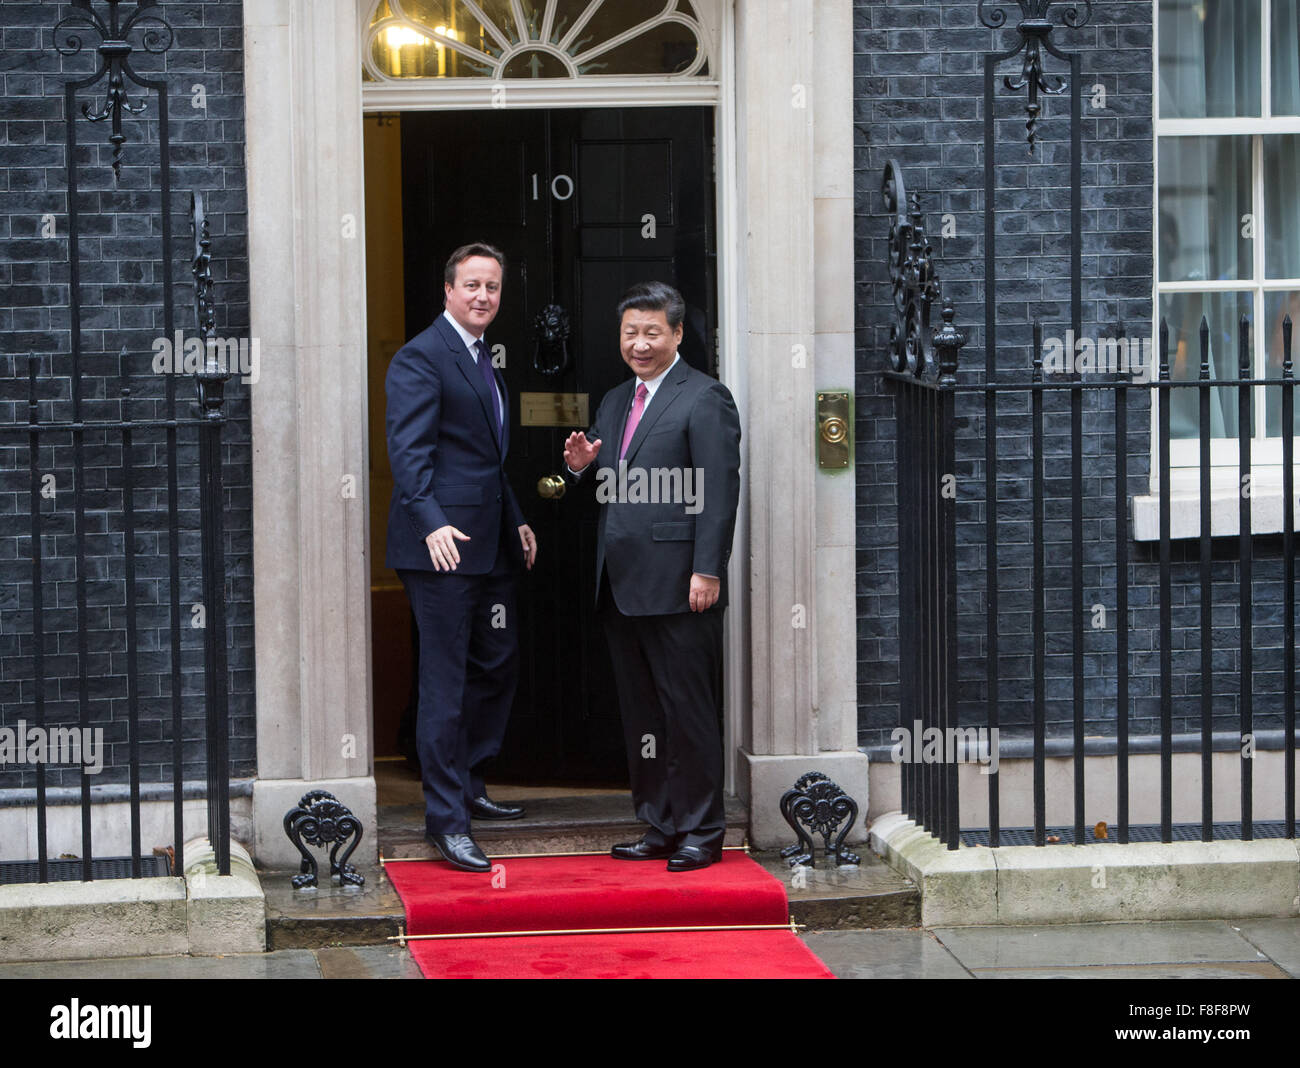 Prime Minister David Cameron and President Xi Jinping of China meet at 10 Downing Street during his visit - Stock Image